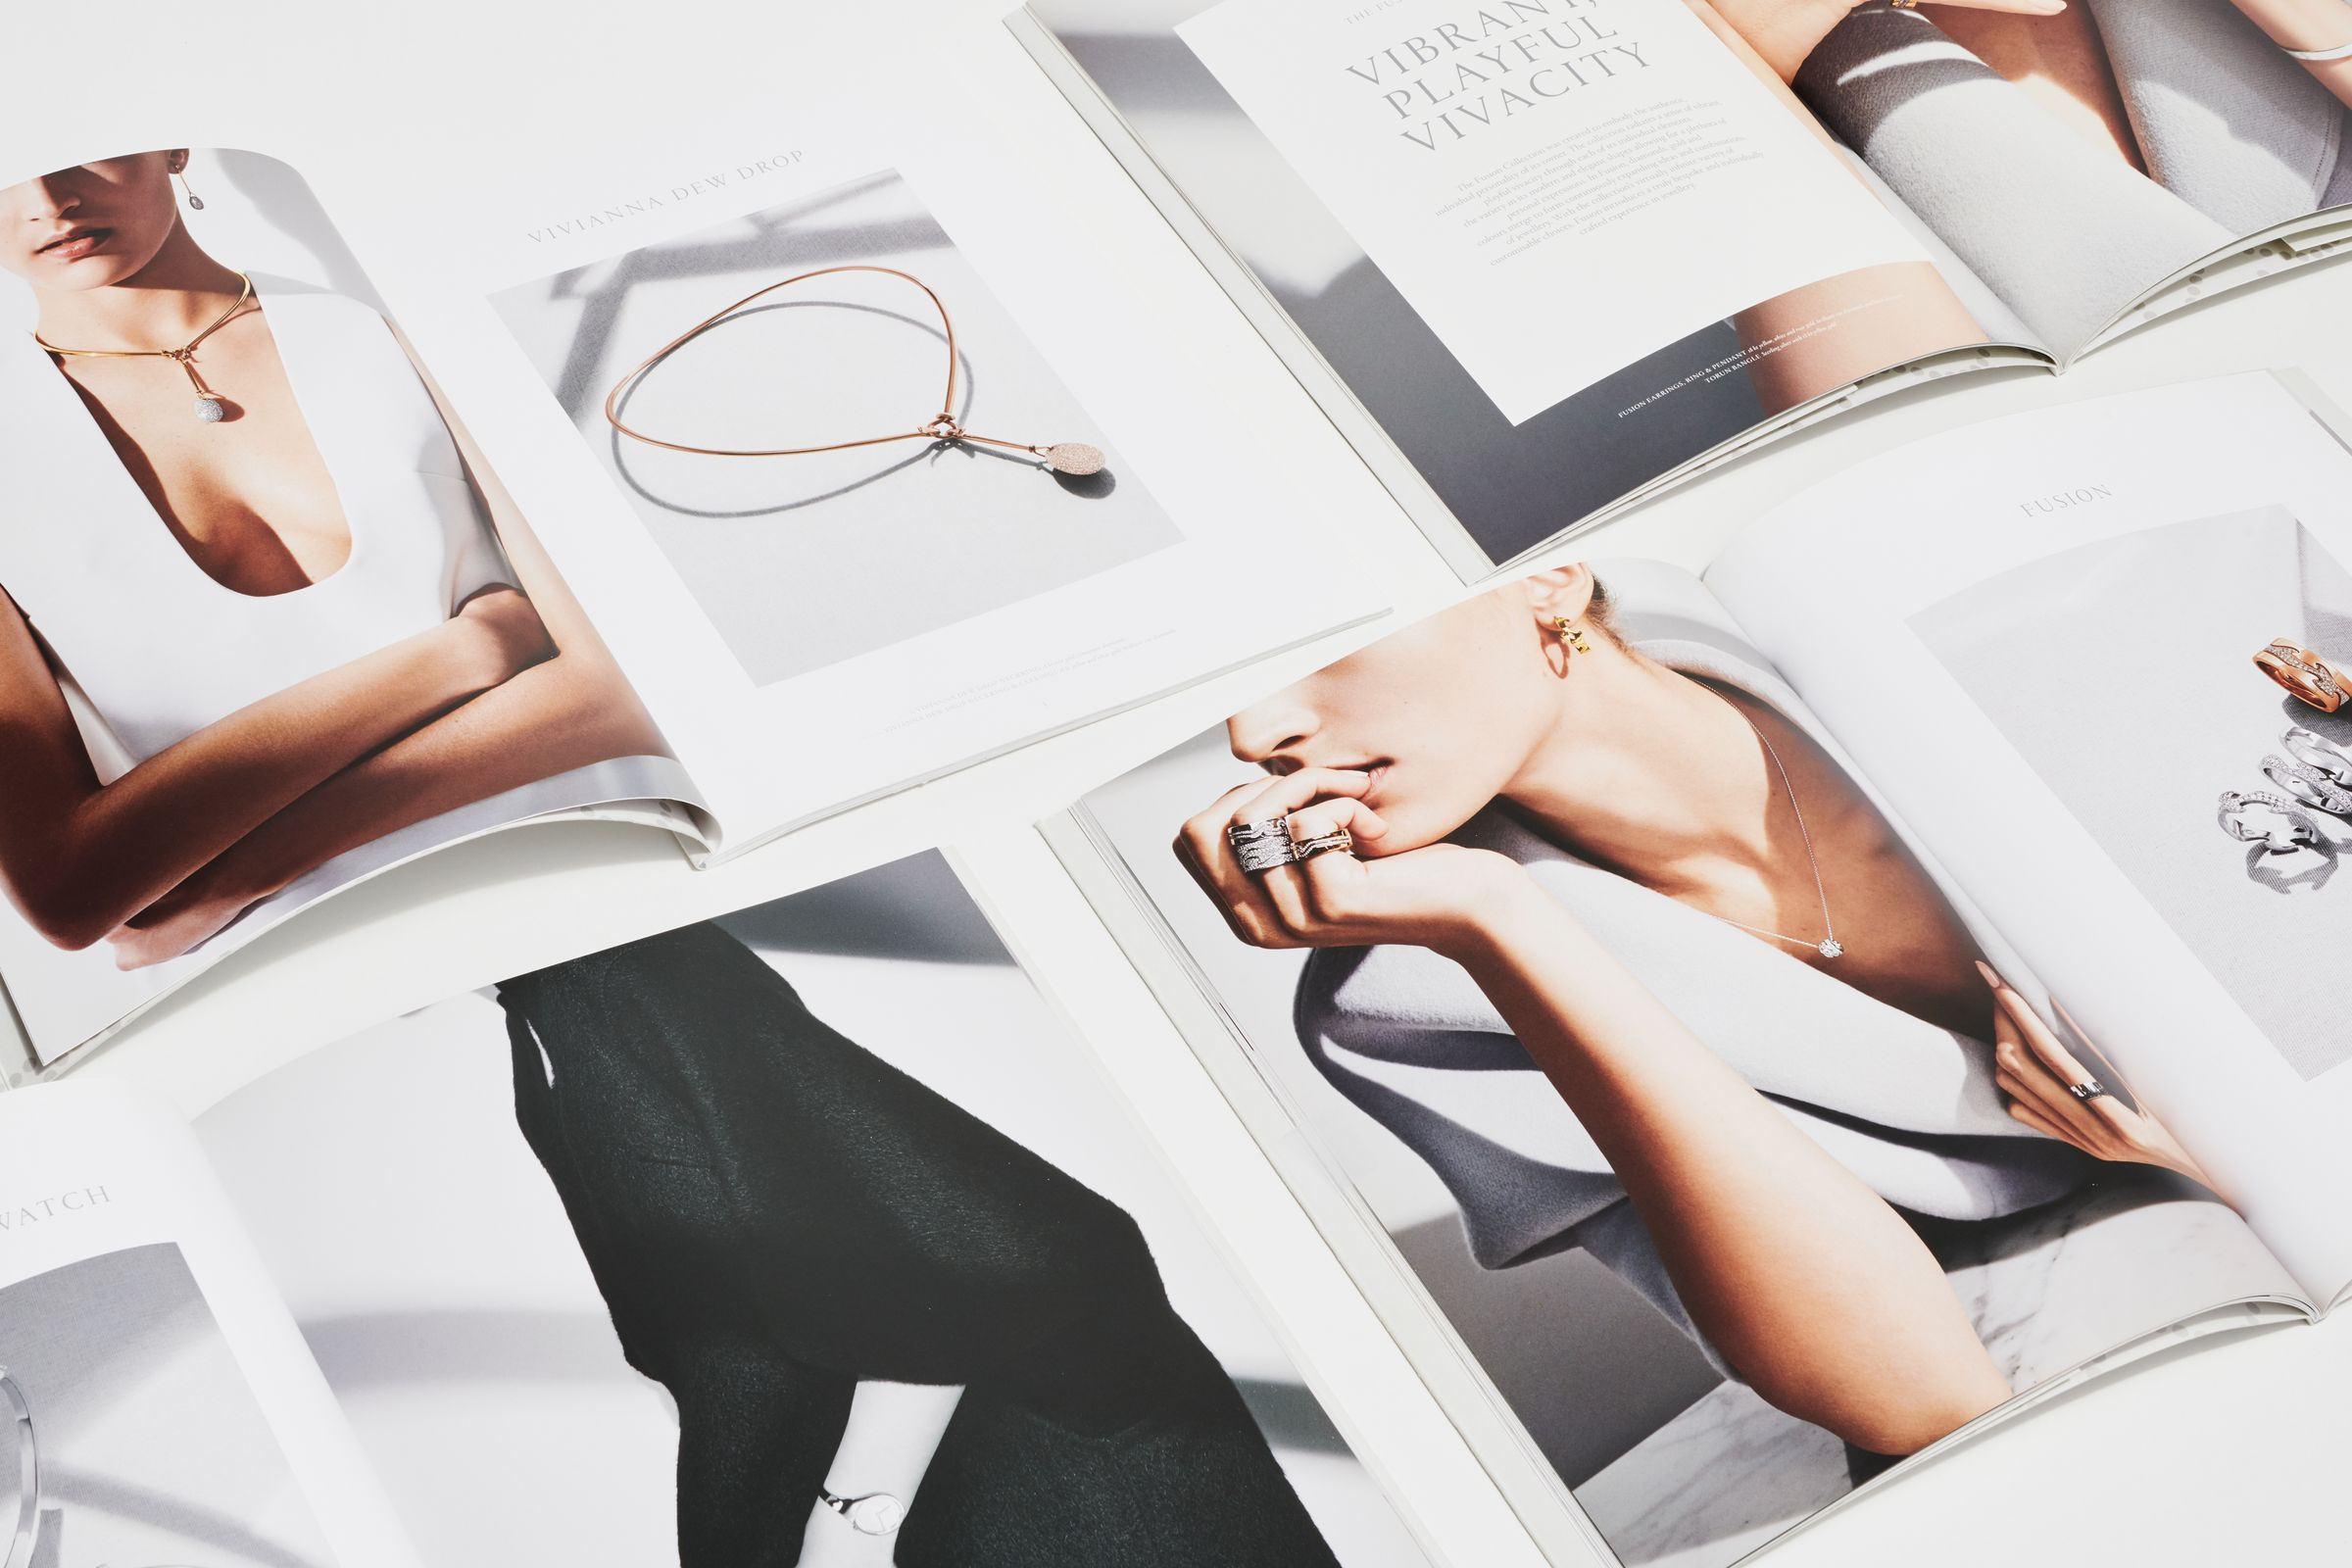 Georg Jensen catalog designs with campaign photography